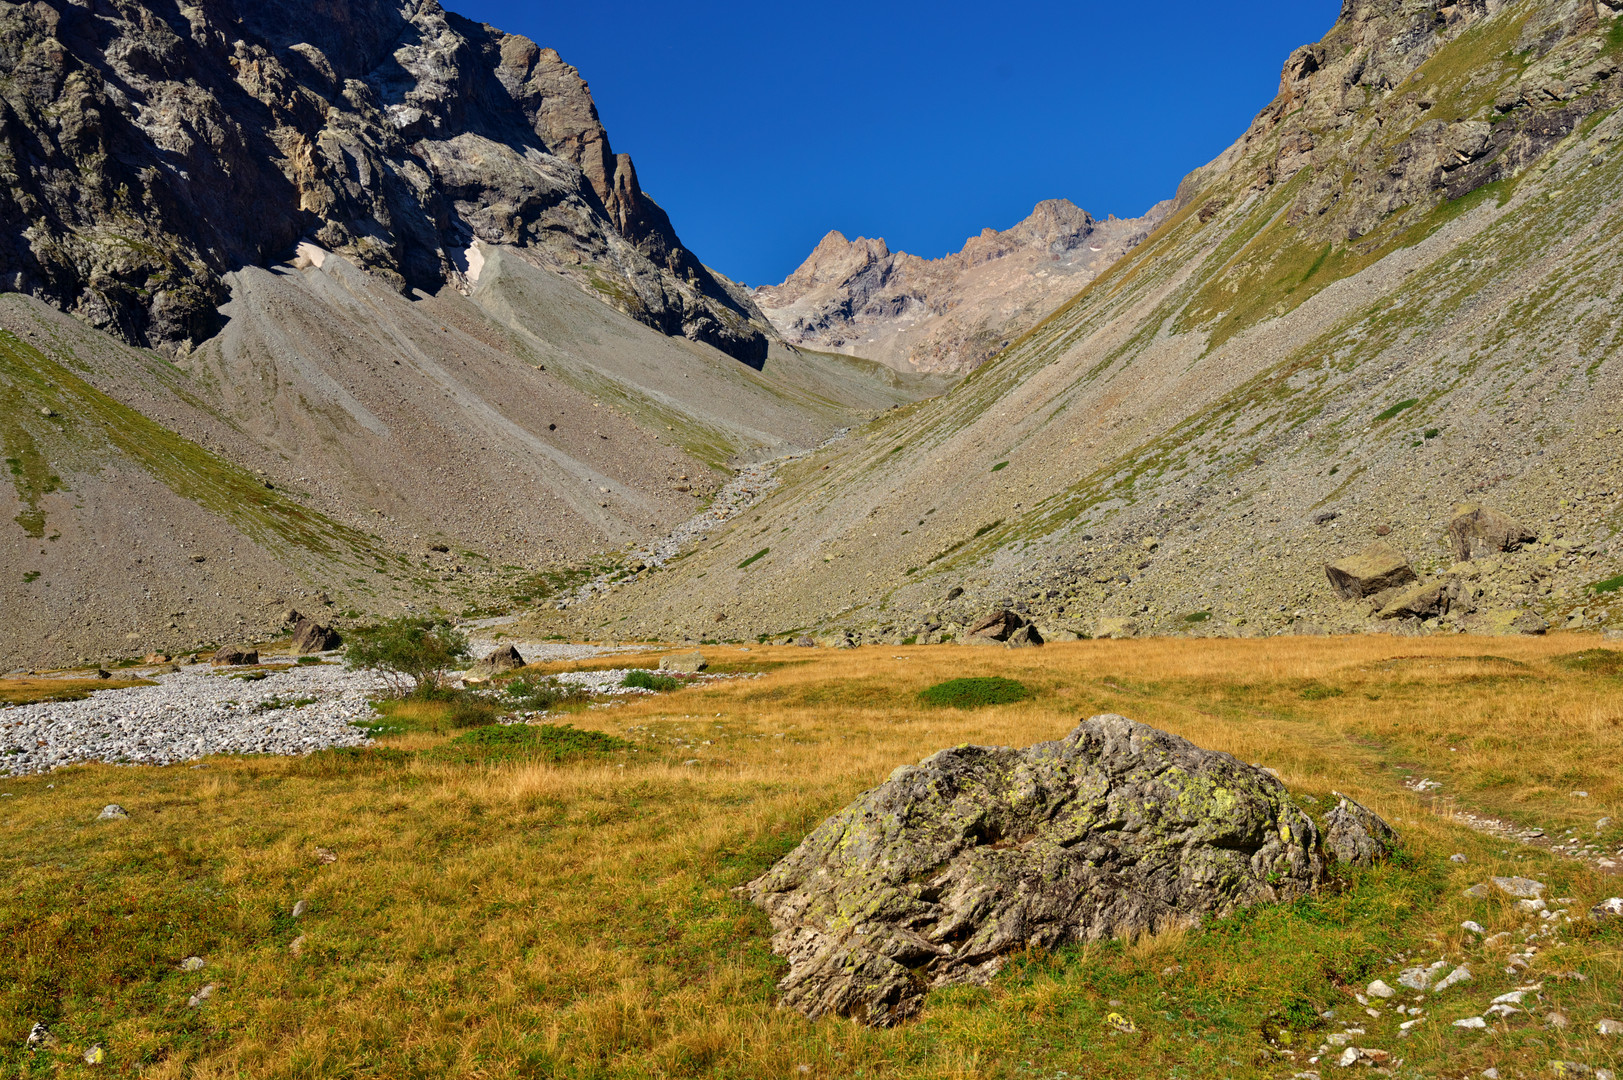 The trail to Cabane du Pave'